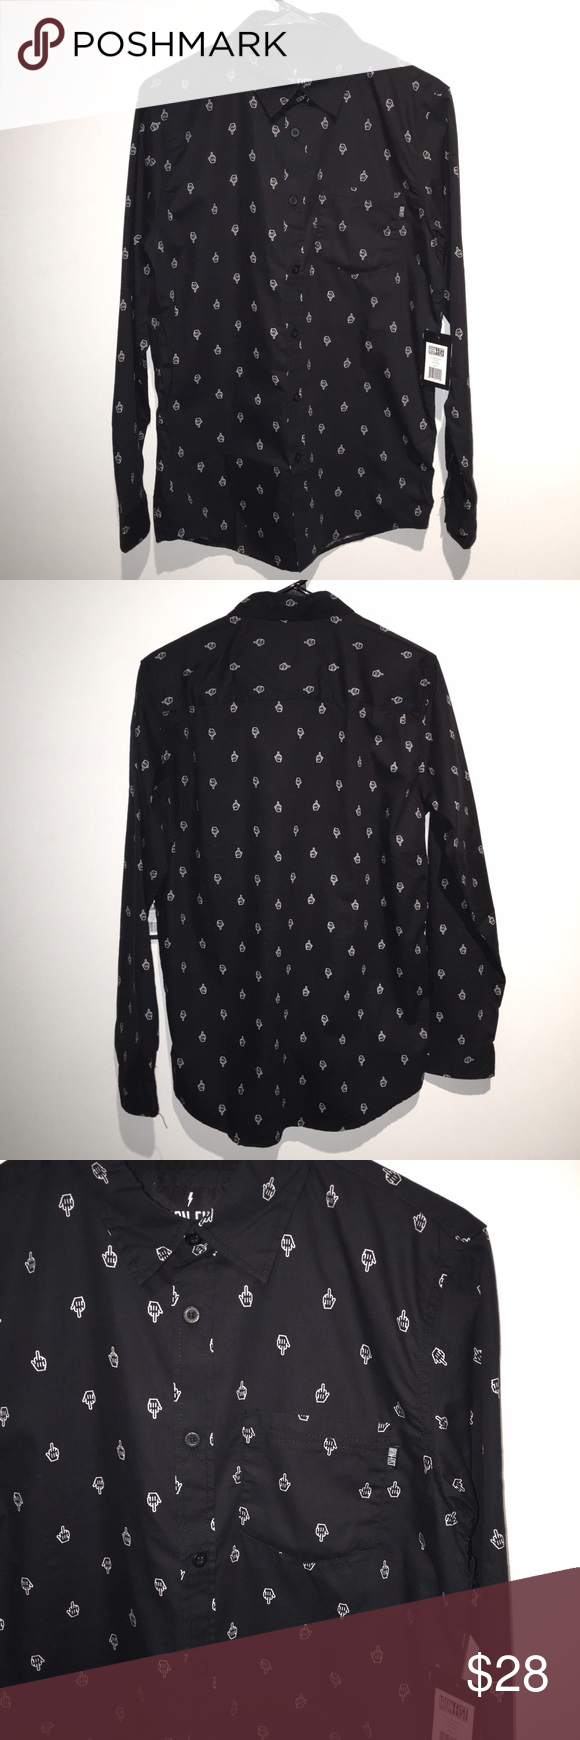 IRON FIST GFY Black L/S Button Up Shirt This shirt is a carefree take on the classic long sleeve button up with little middle fingers tiled all over the material perfect to throw on any day you are feeling a bit rebellious. This shirt has a left chest pocket with a small IRON FIST tag on the pocket and is brand new with original tags and no defects. 100% Cotton; Cold wash separately; hang dry. Made in China 🇨🇳 Iron Fist Shirts Casual Button Down Shirts